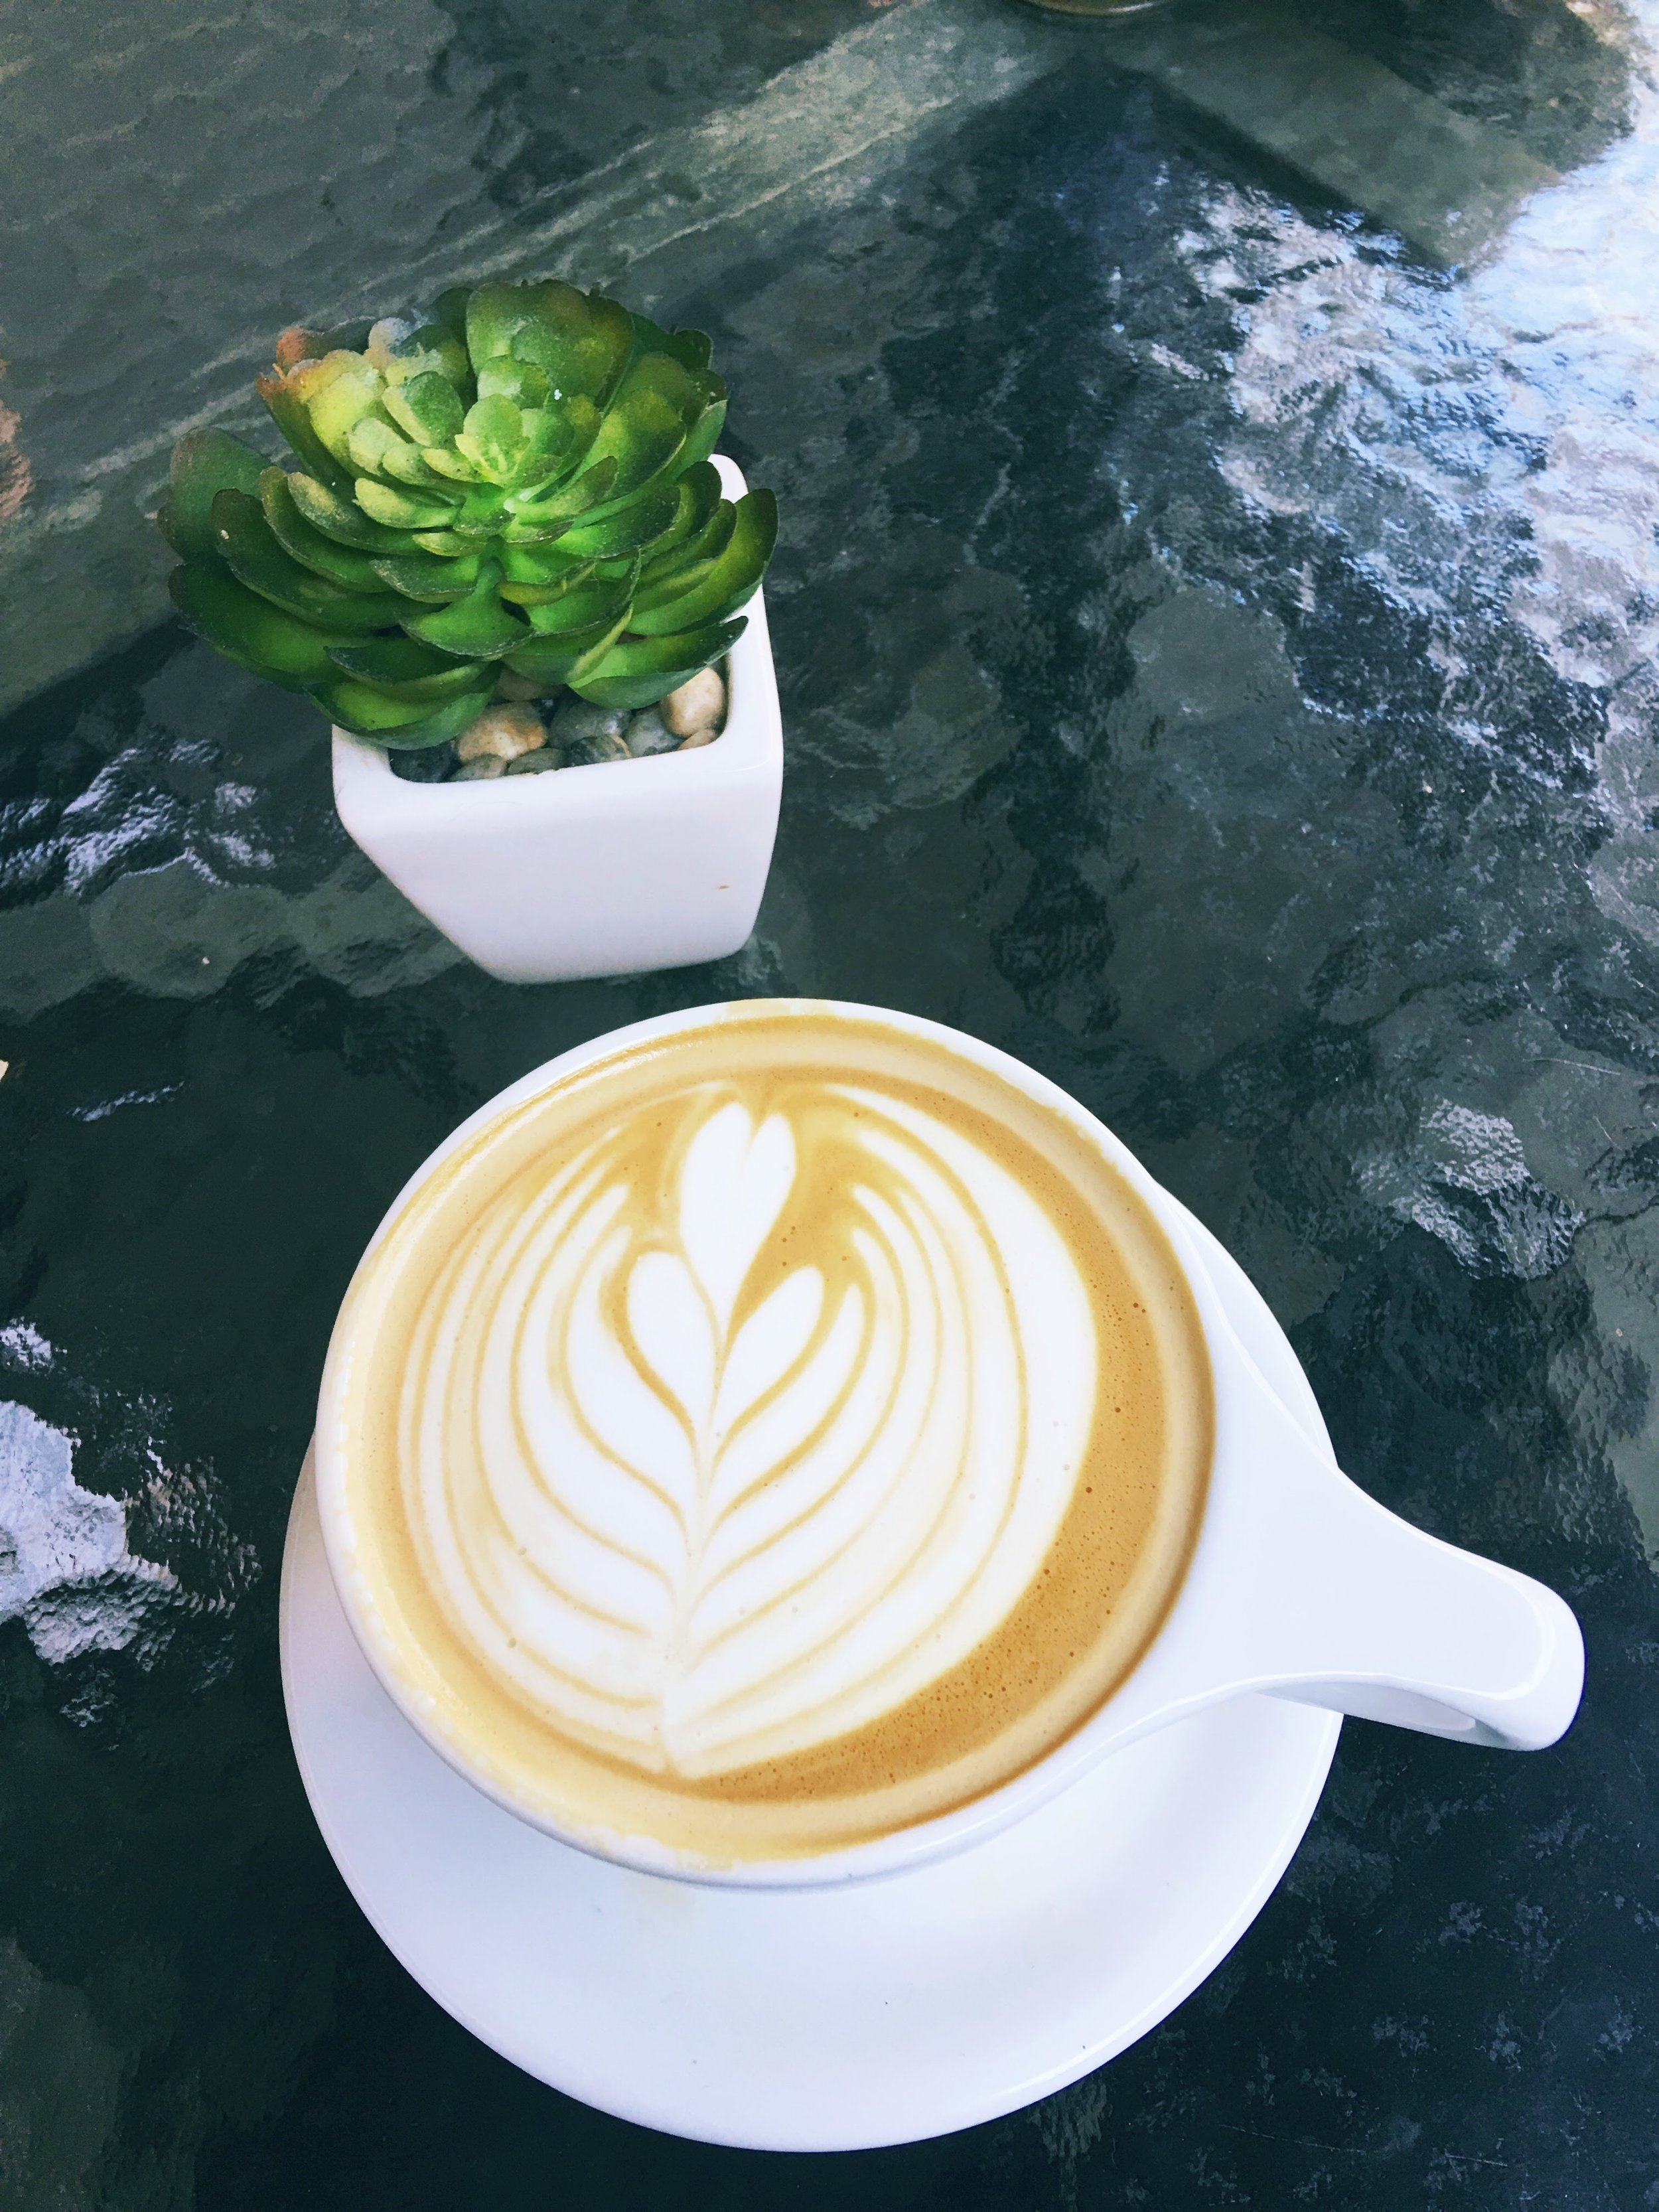 Latte Art and Succulent from La Mo Cafe in Turlock, CA